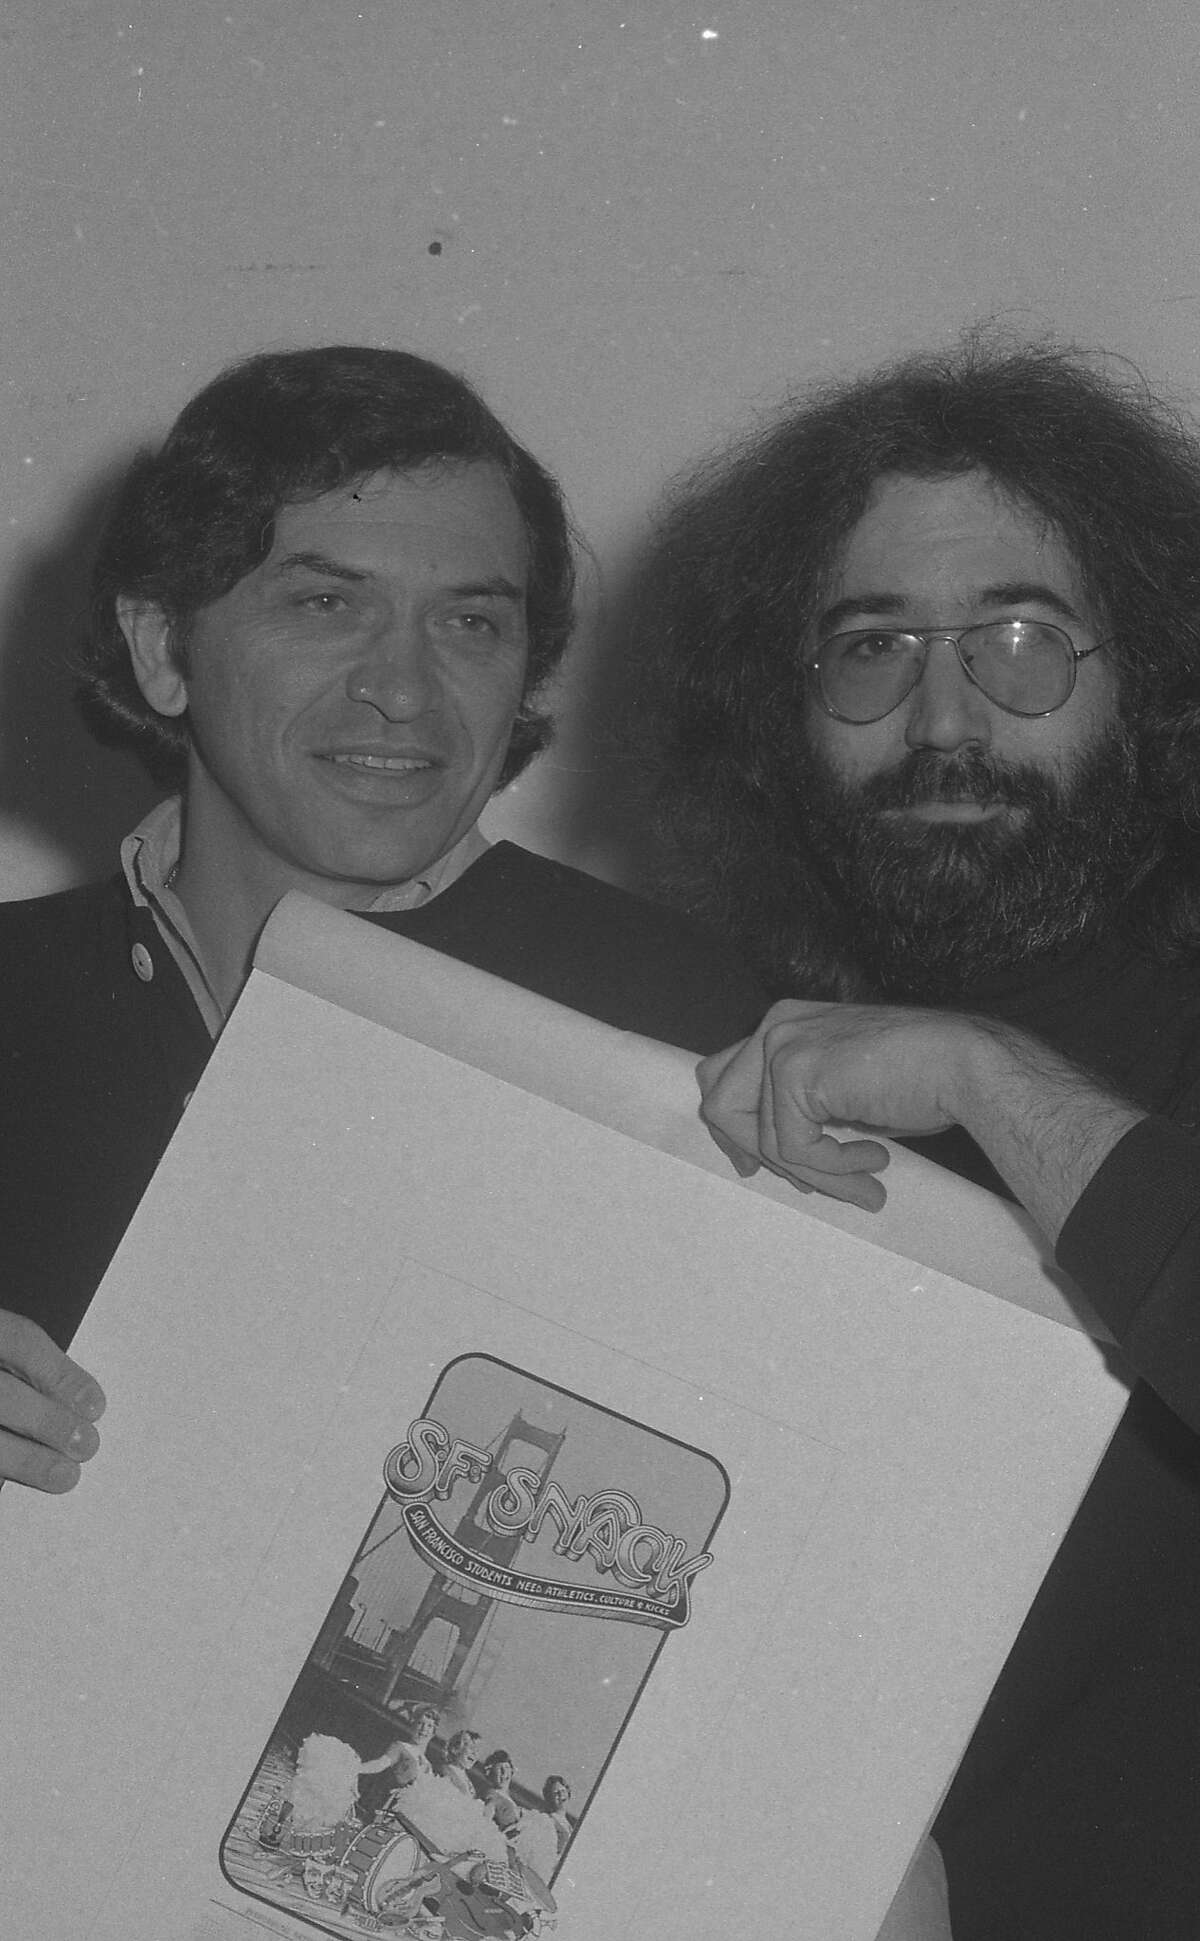 Concert to benefit San Francisco School Sports (SNACK) organized by Bill Graham with the support of Mayor Joe Alioto, Willie Mays, Cecil Williams, Jerry Garcia and Carlos Santana. This press conference happened February 19, 1975